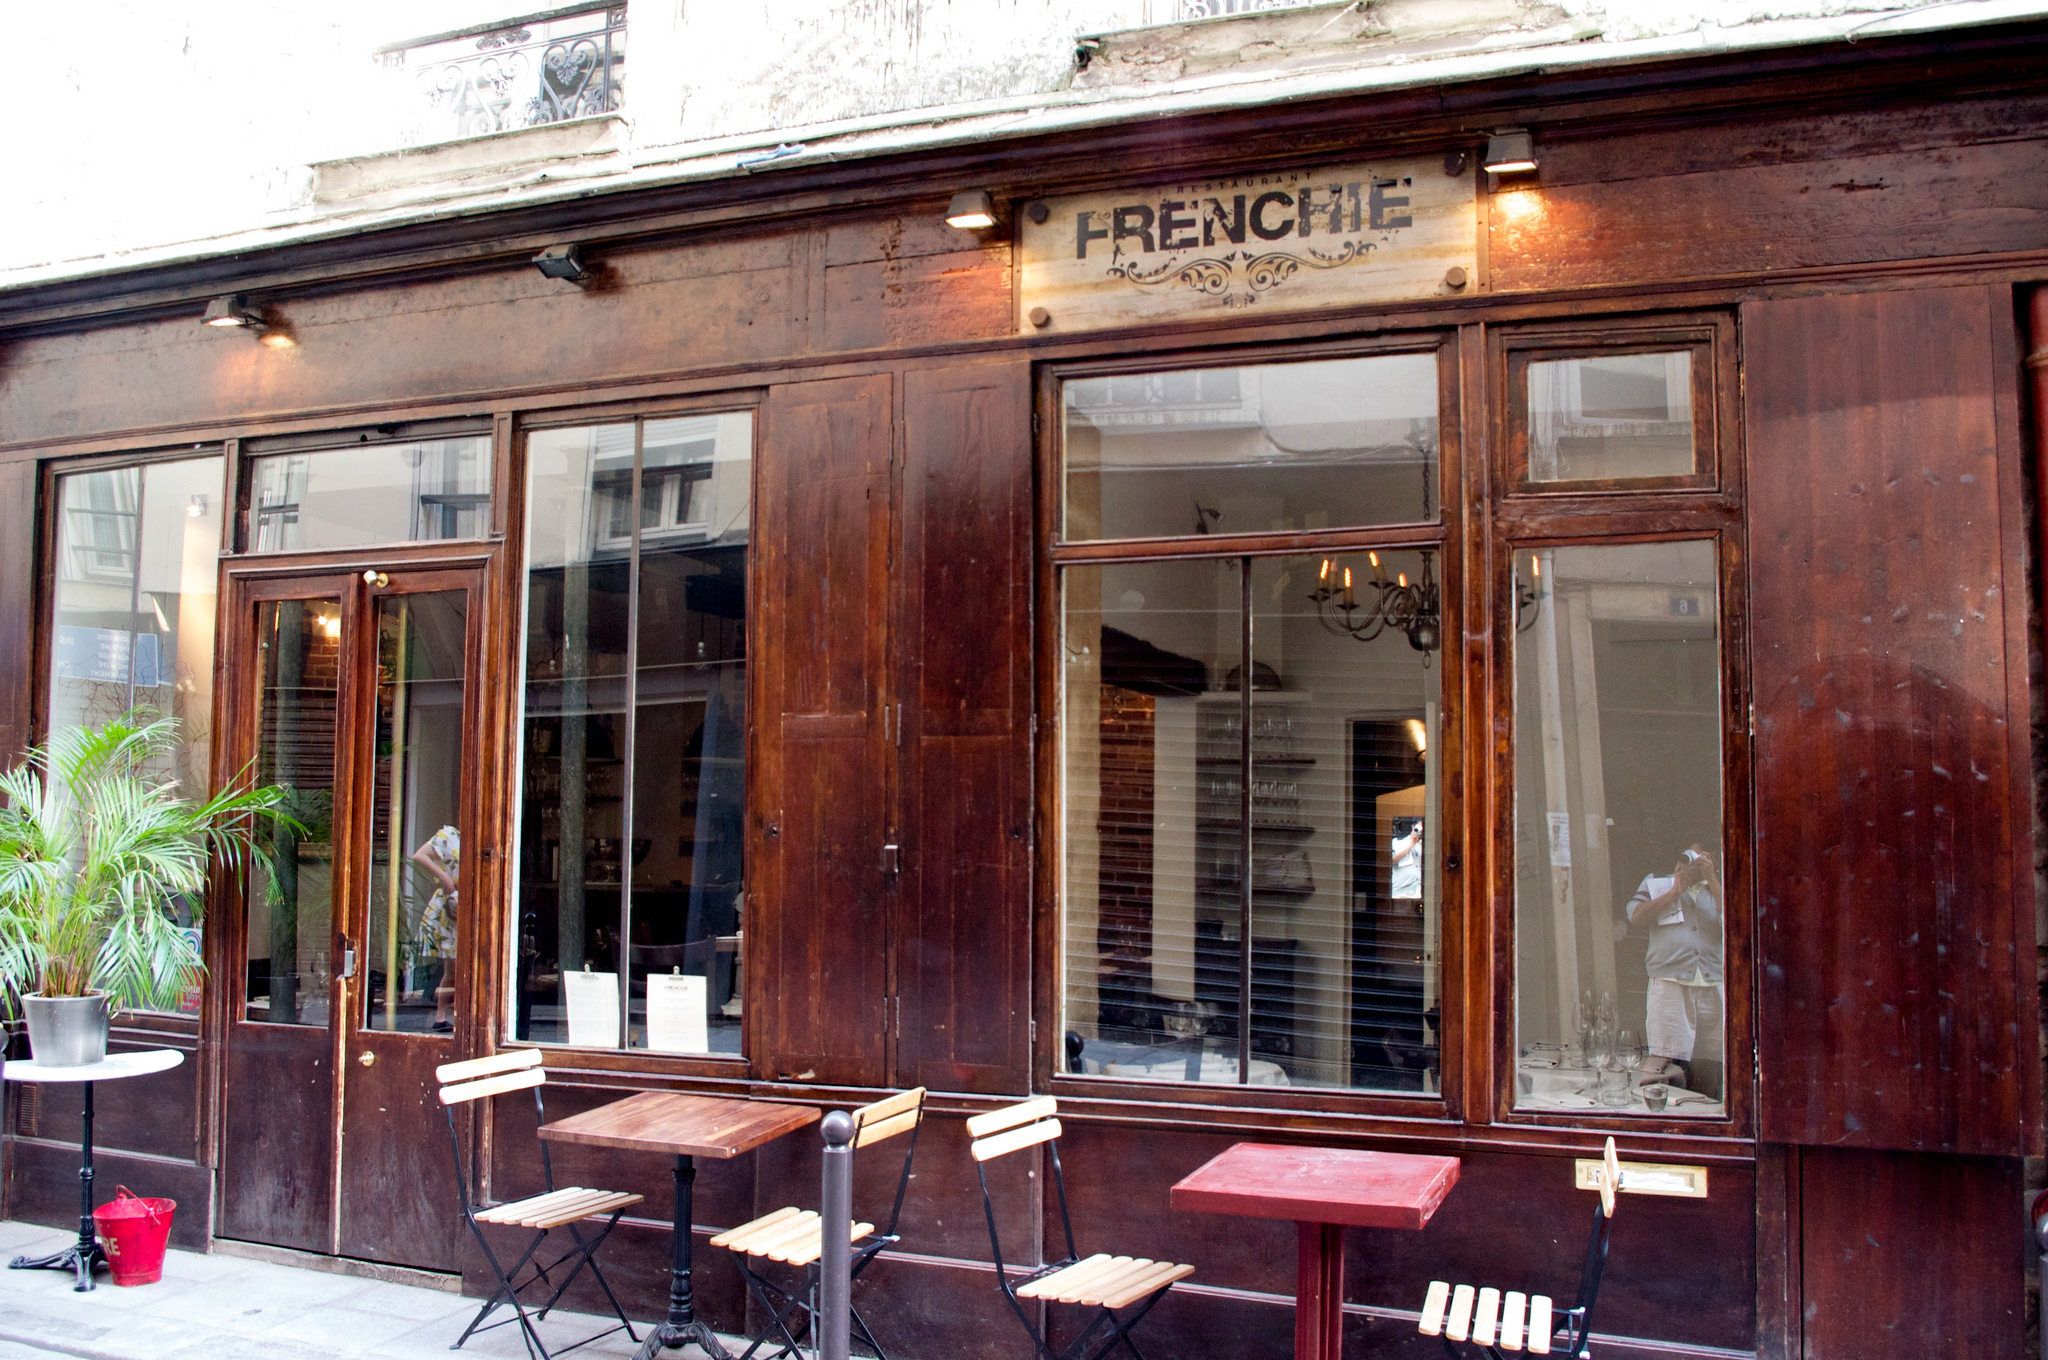 Exterior of Frenchie's in Paris. Photo by alphacityguides.